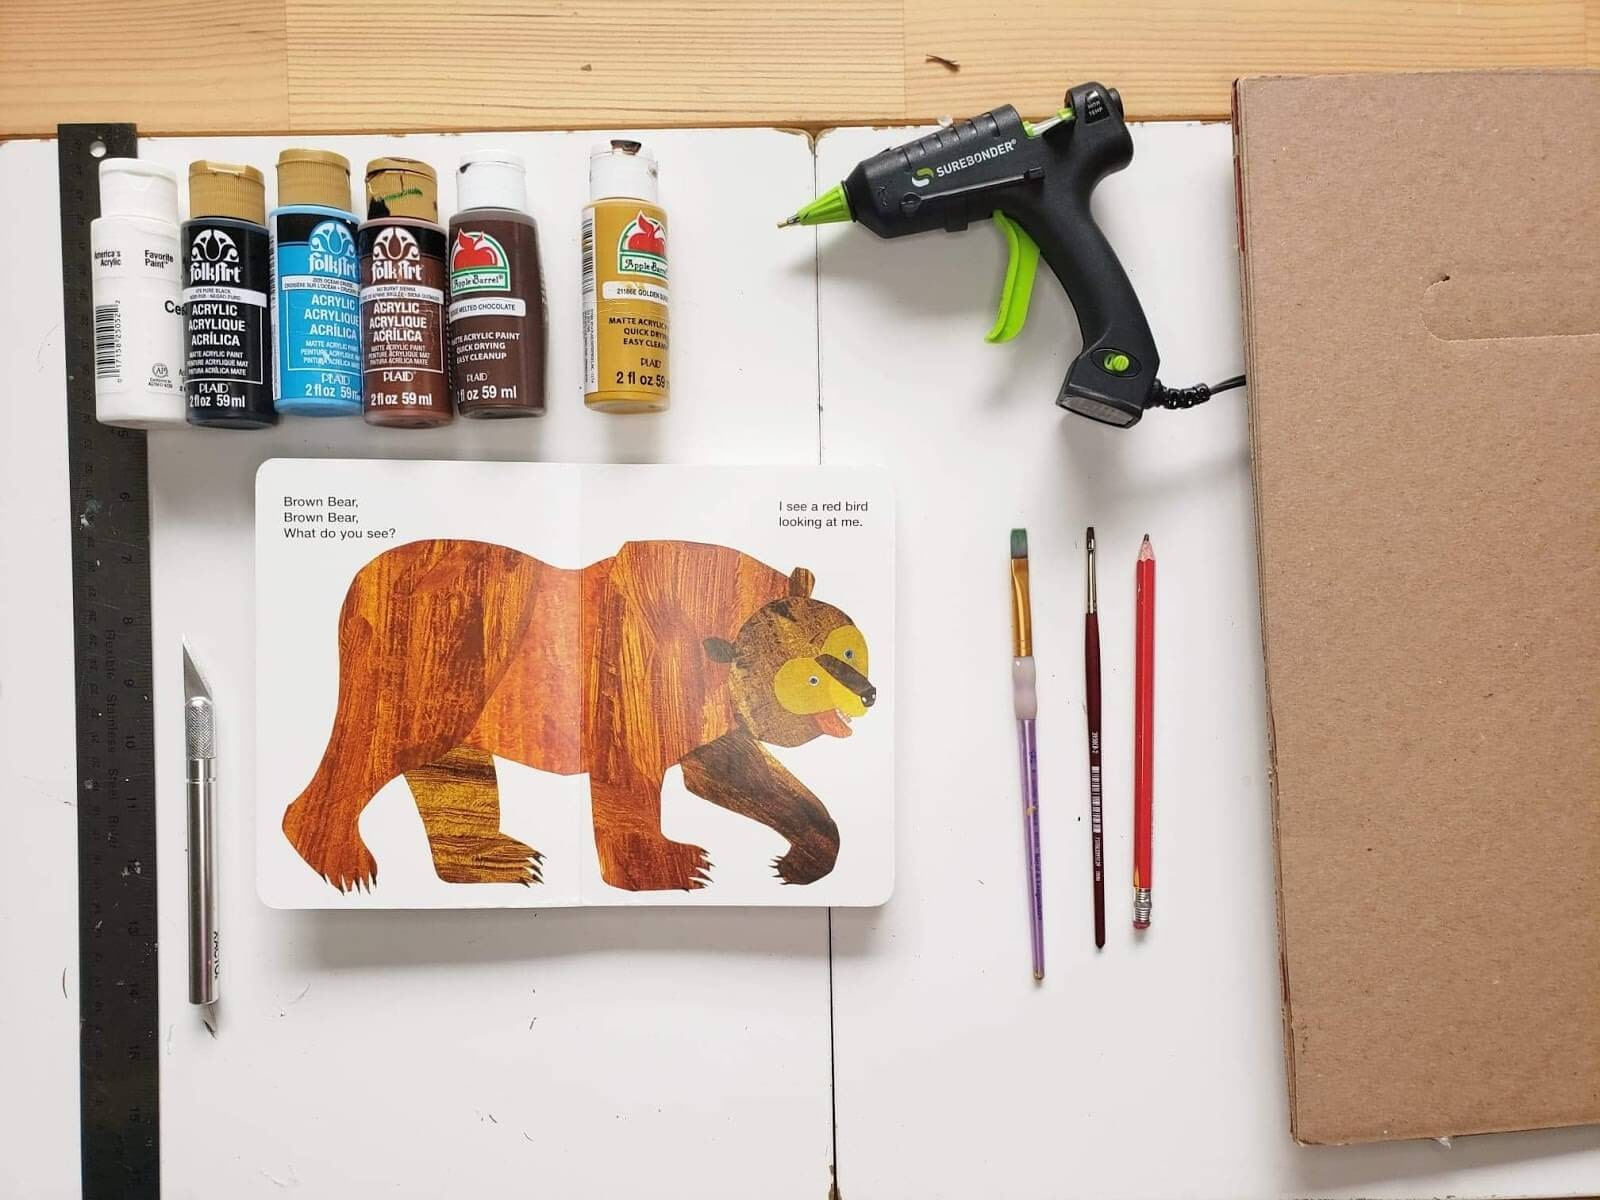 materials for brown bear brown bear what do you see sensory puzzle